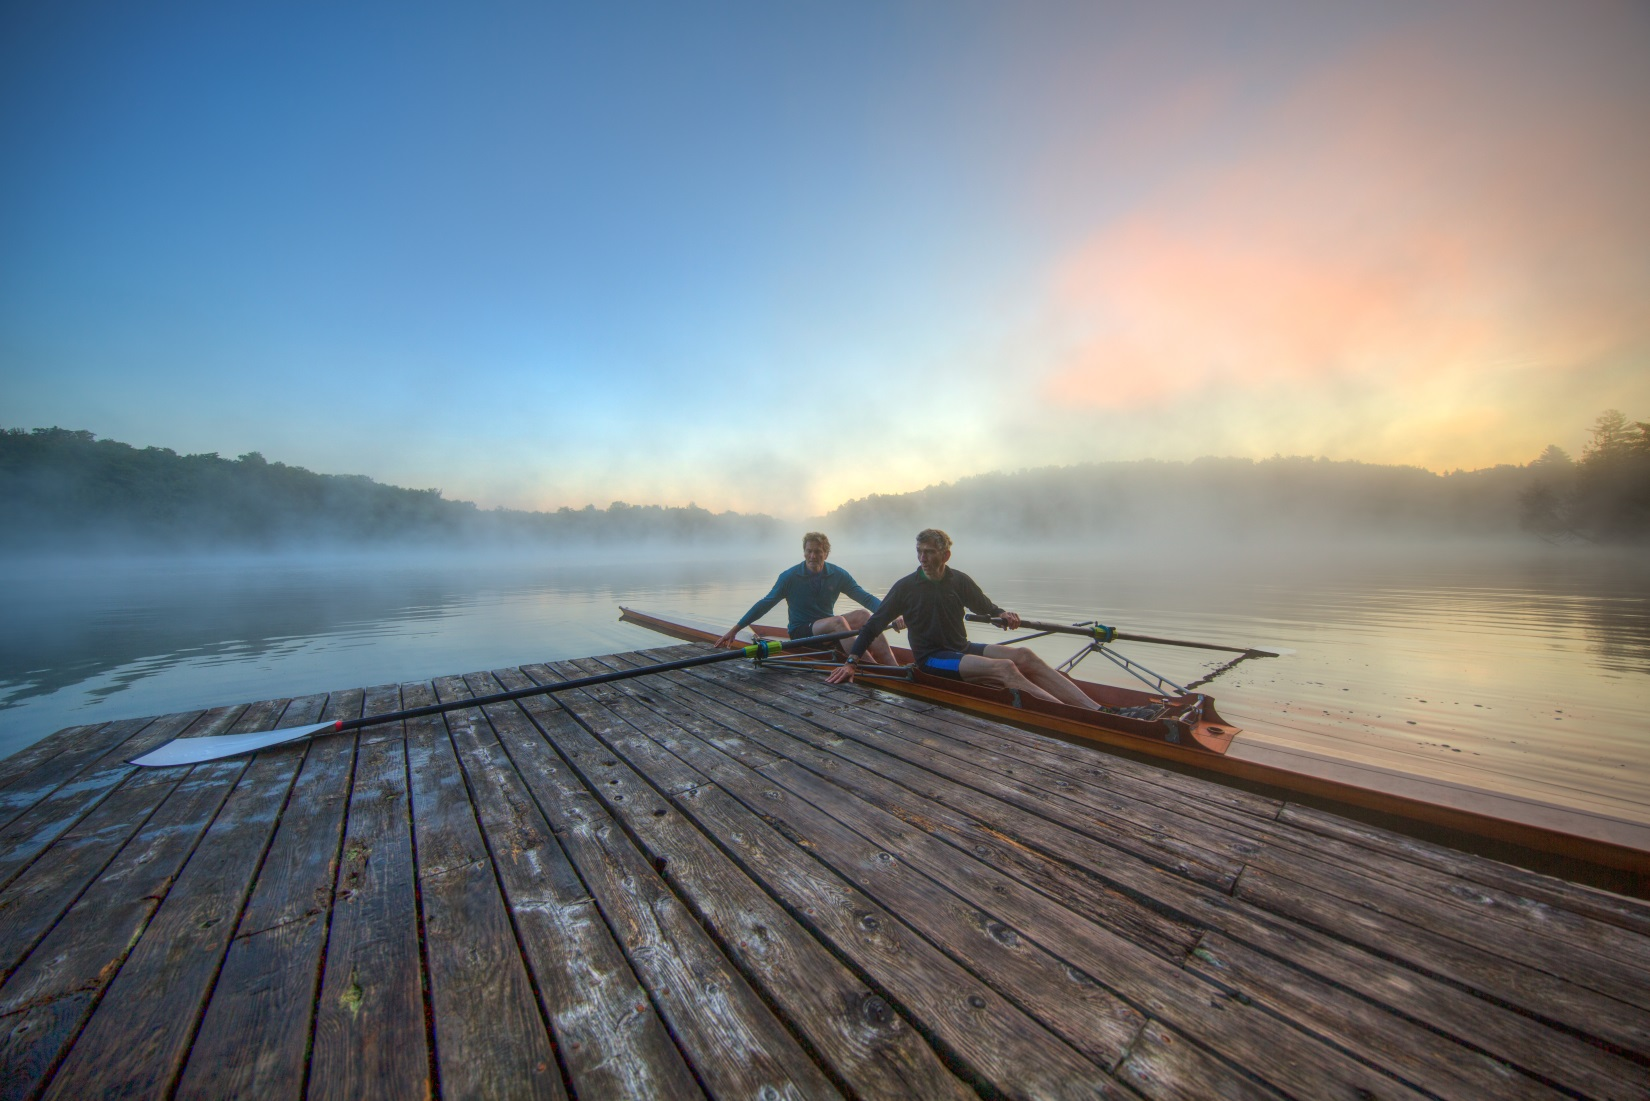 Founders Dick and Peter continue to innovate and personally test each product. Here they are heading out for an early morning oar-testing session in their 1984 wooden Stämpfli pair on Big Hosmer Pond, Craftsbury, Vermont.